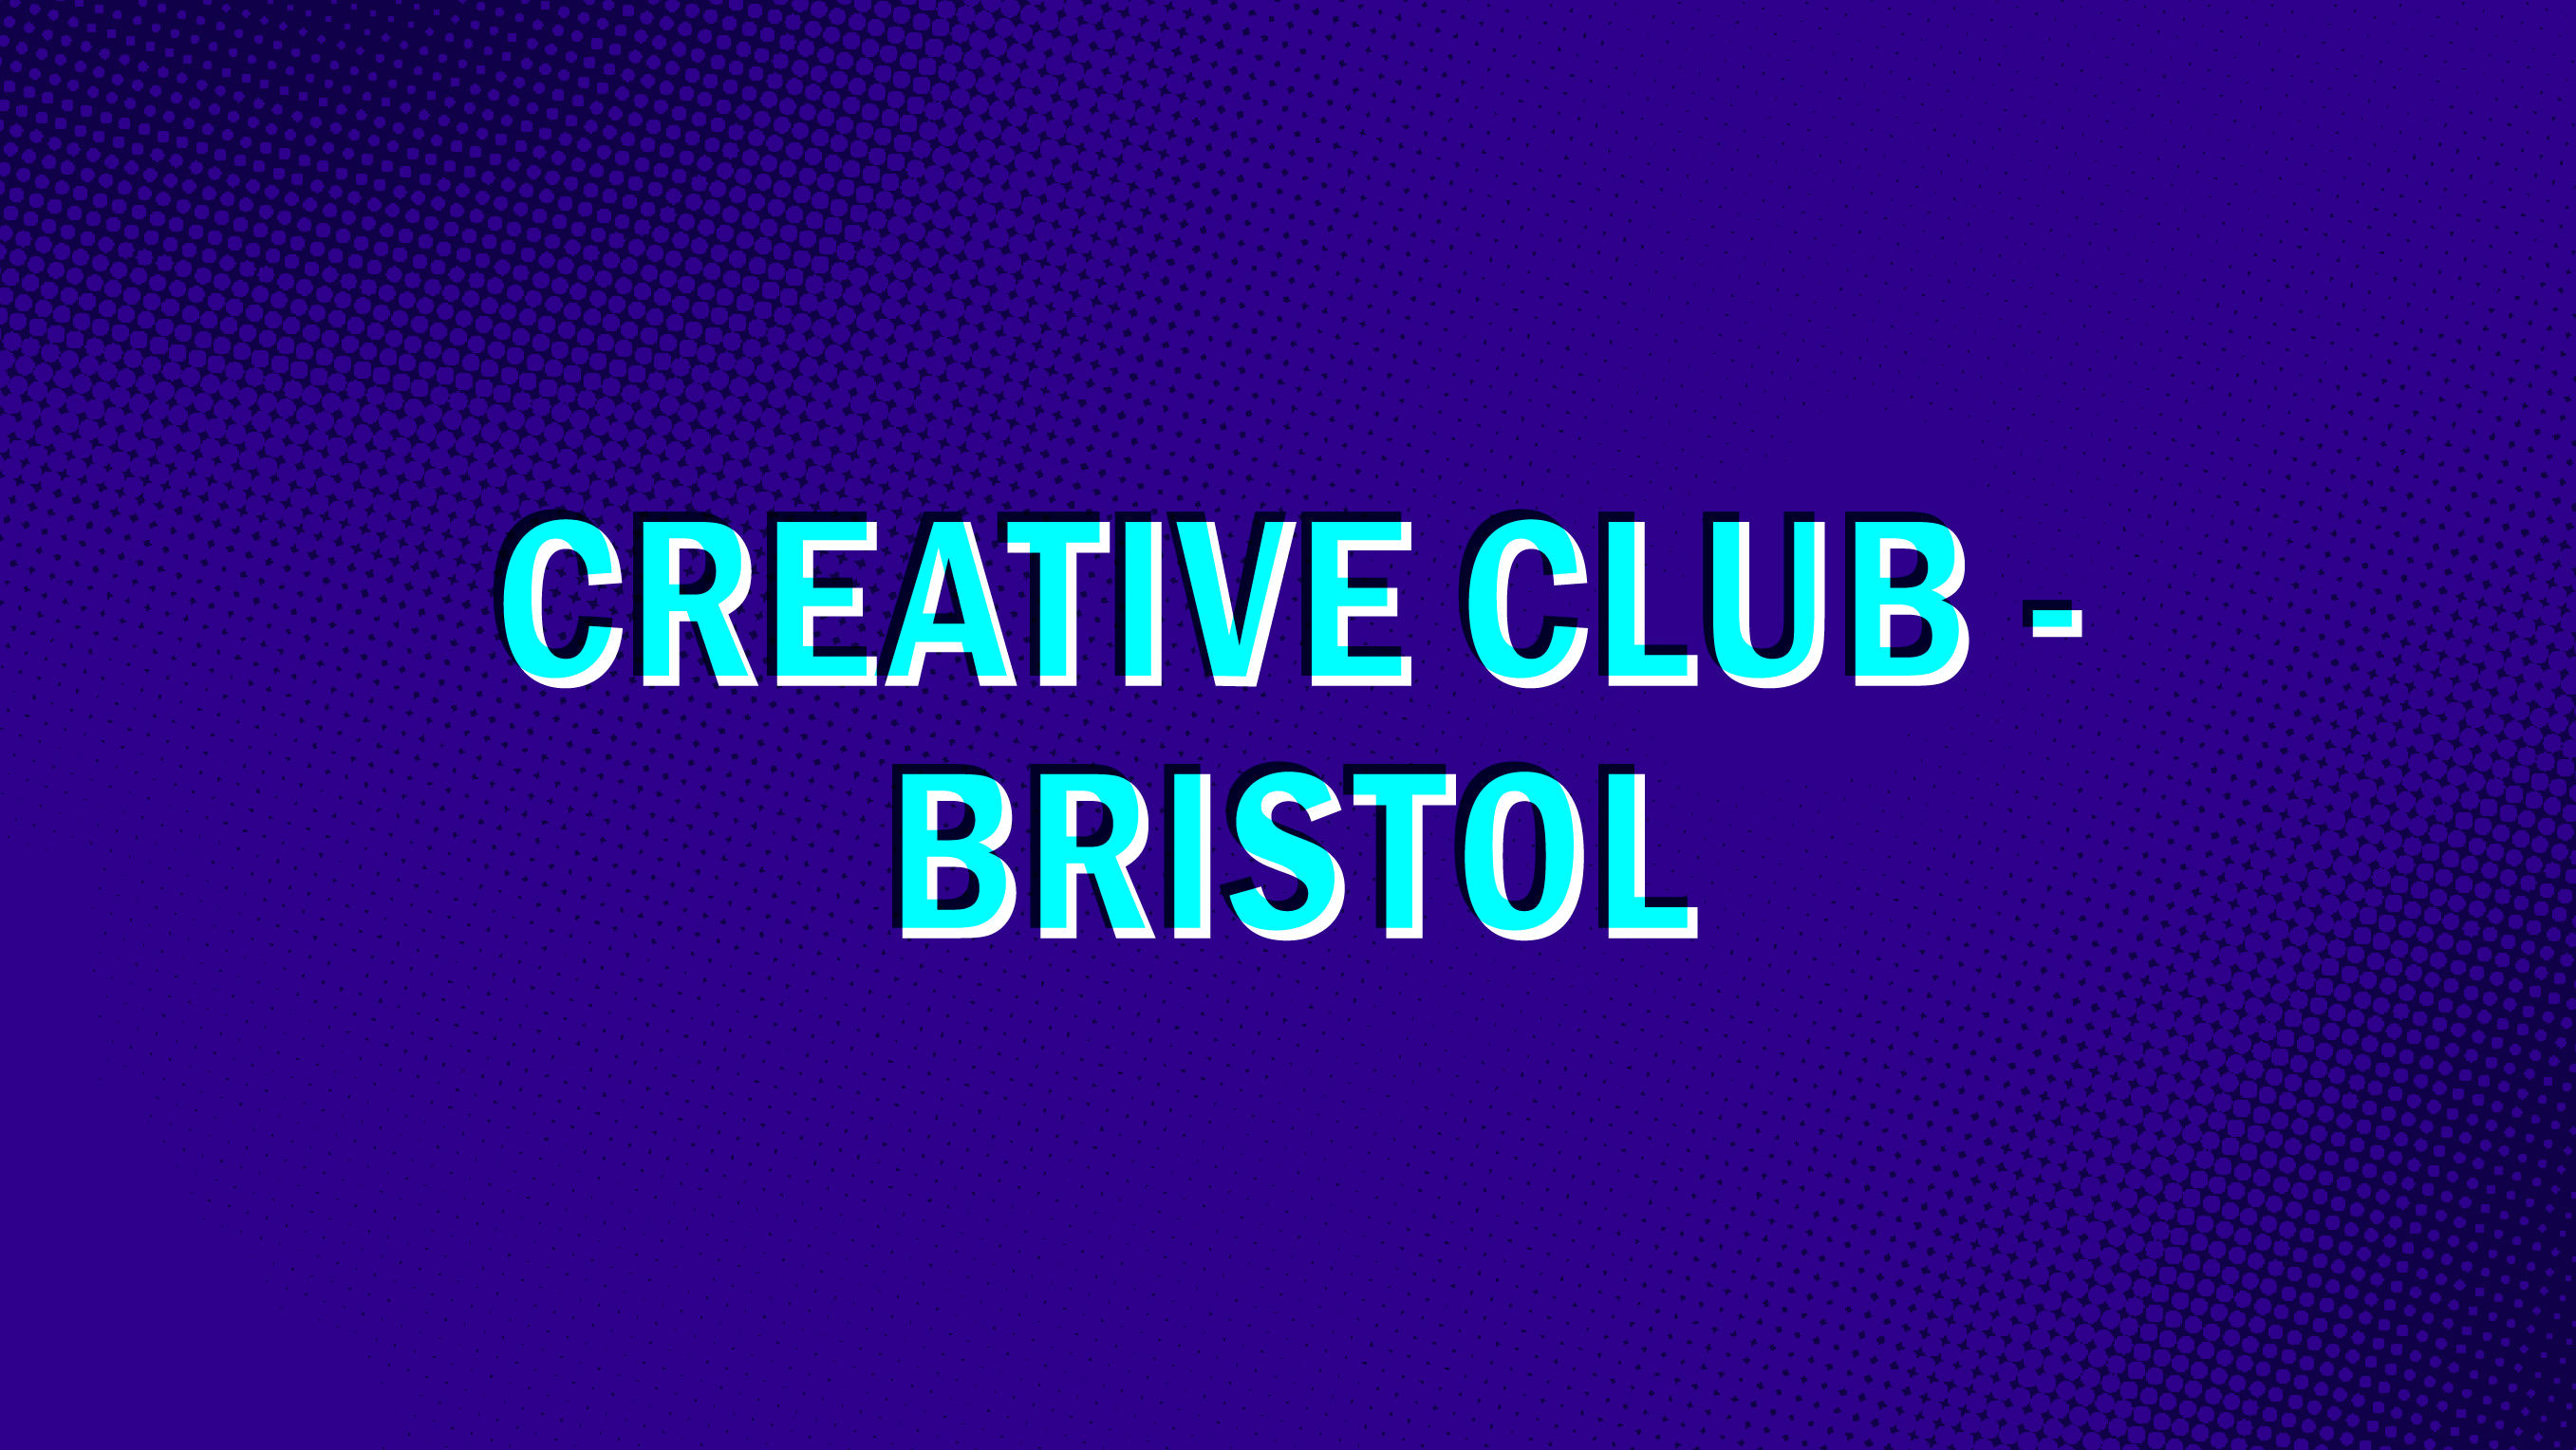 Creative club - Bristol-01 (1).png